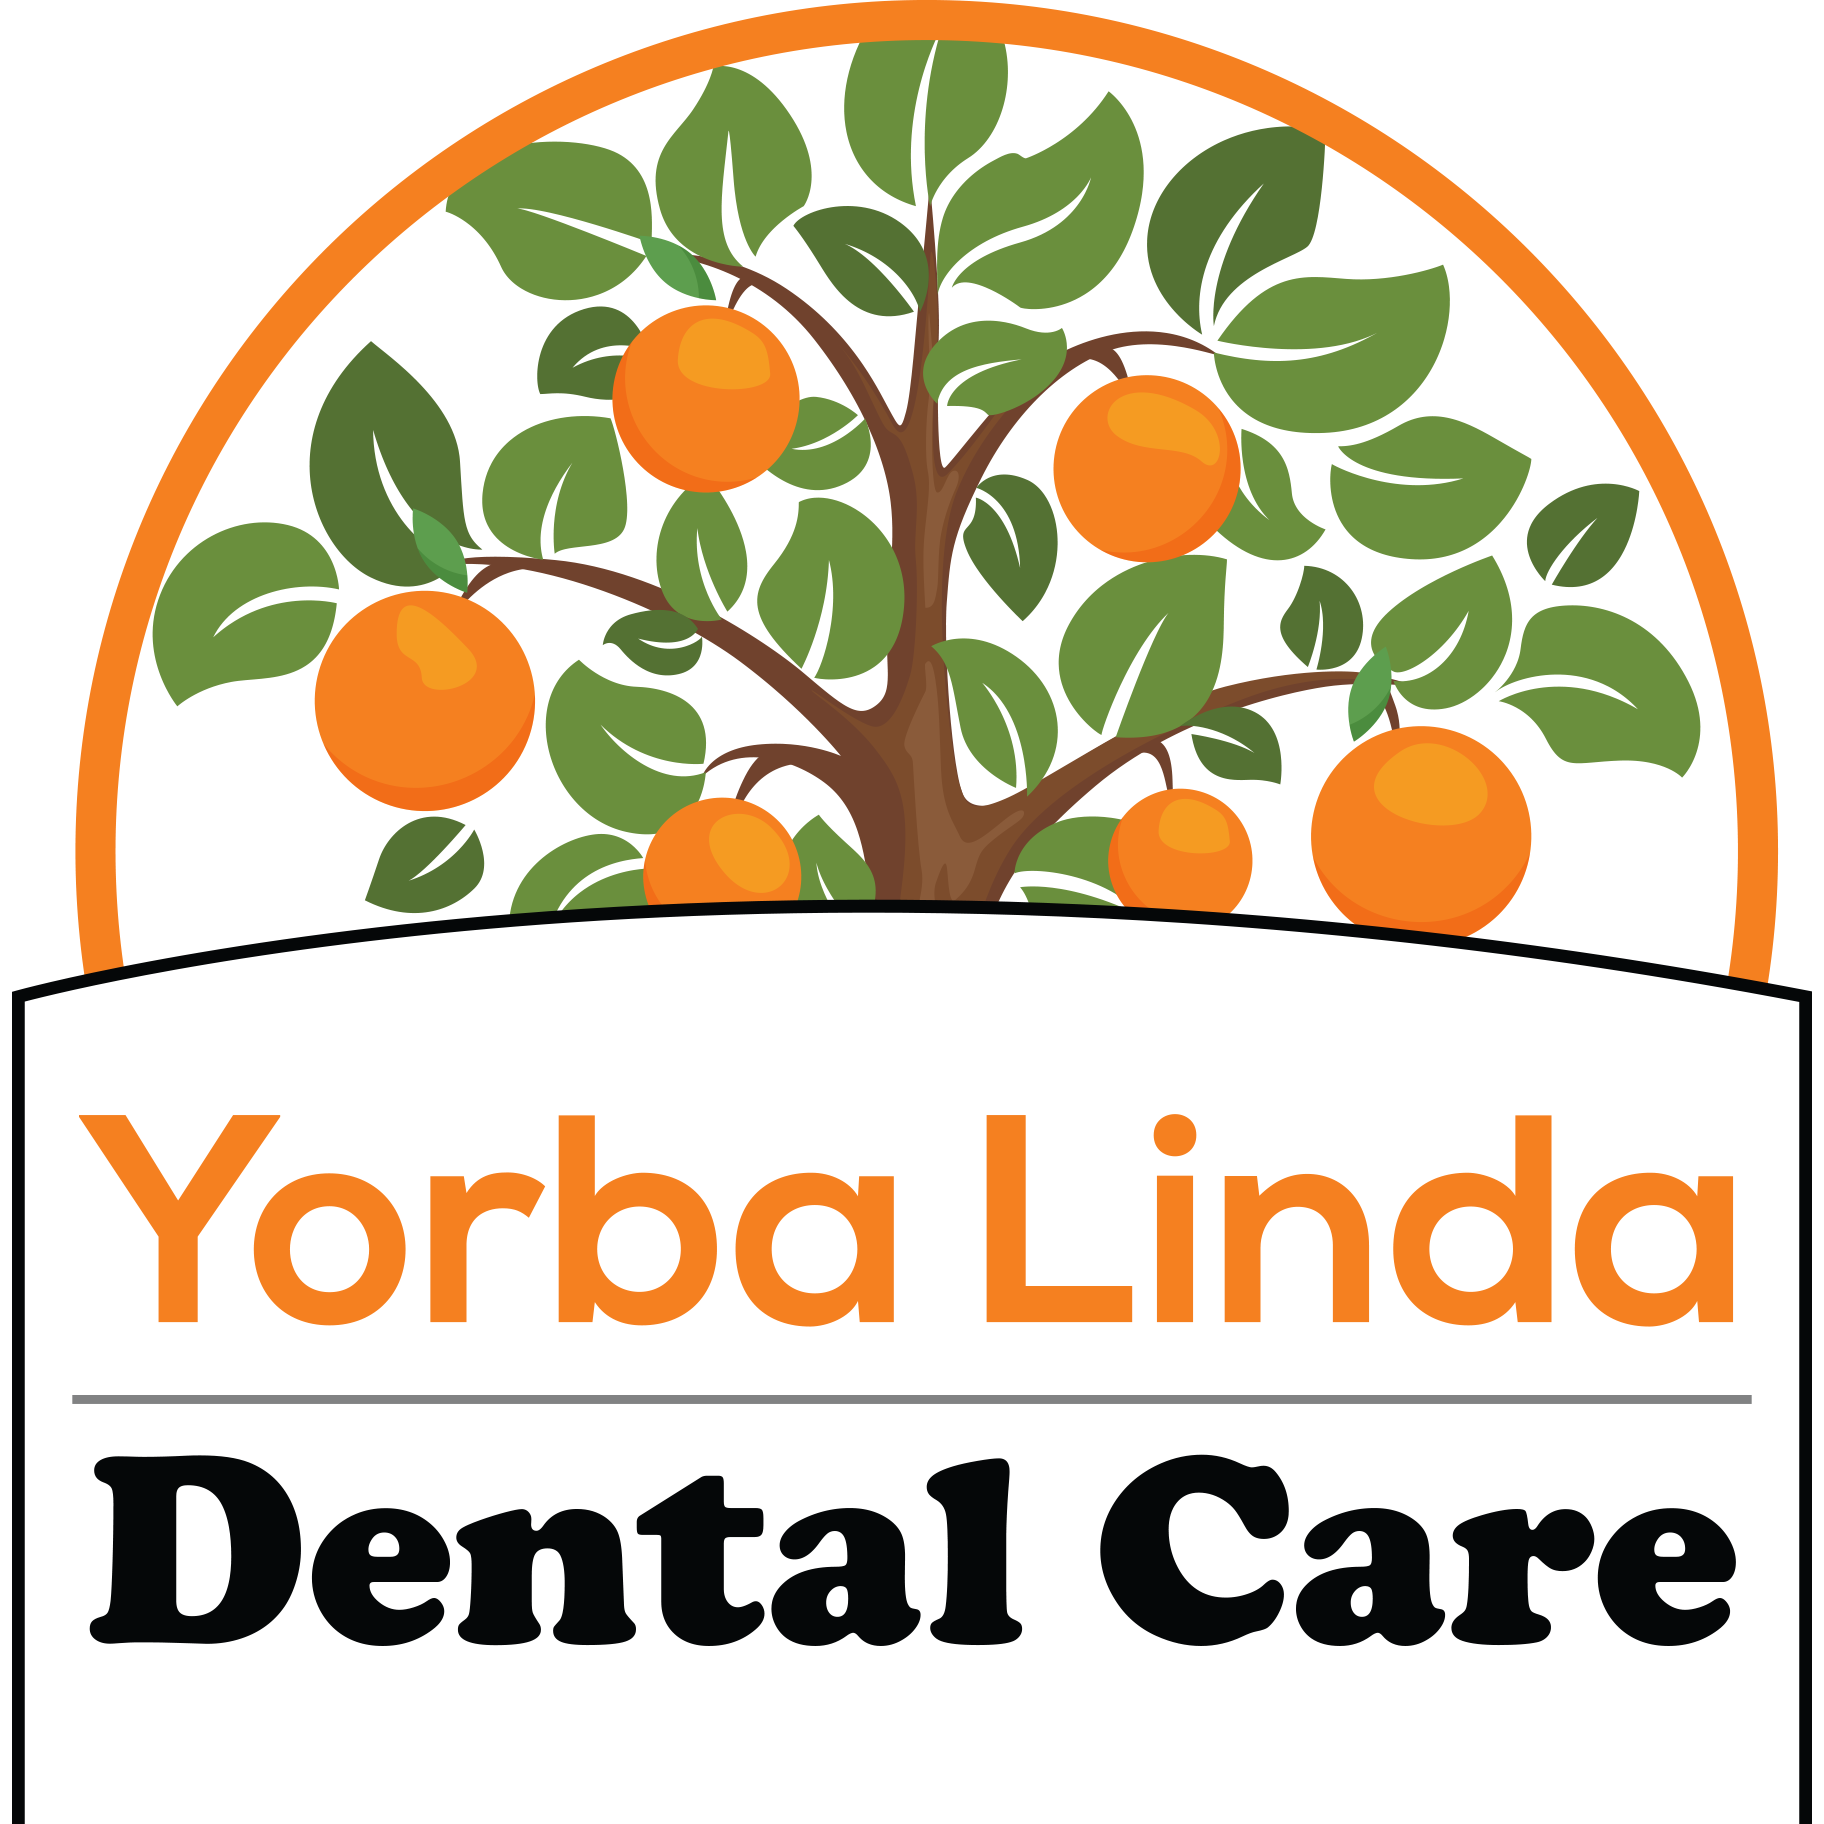 Yorba Linda Dental Care